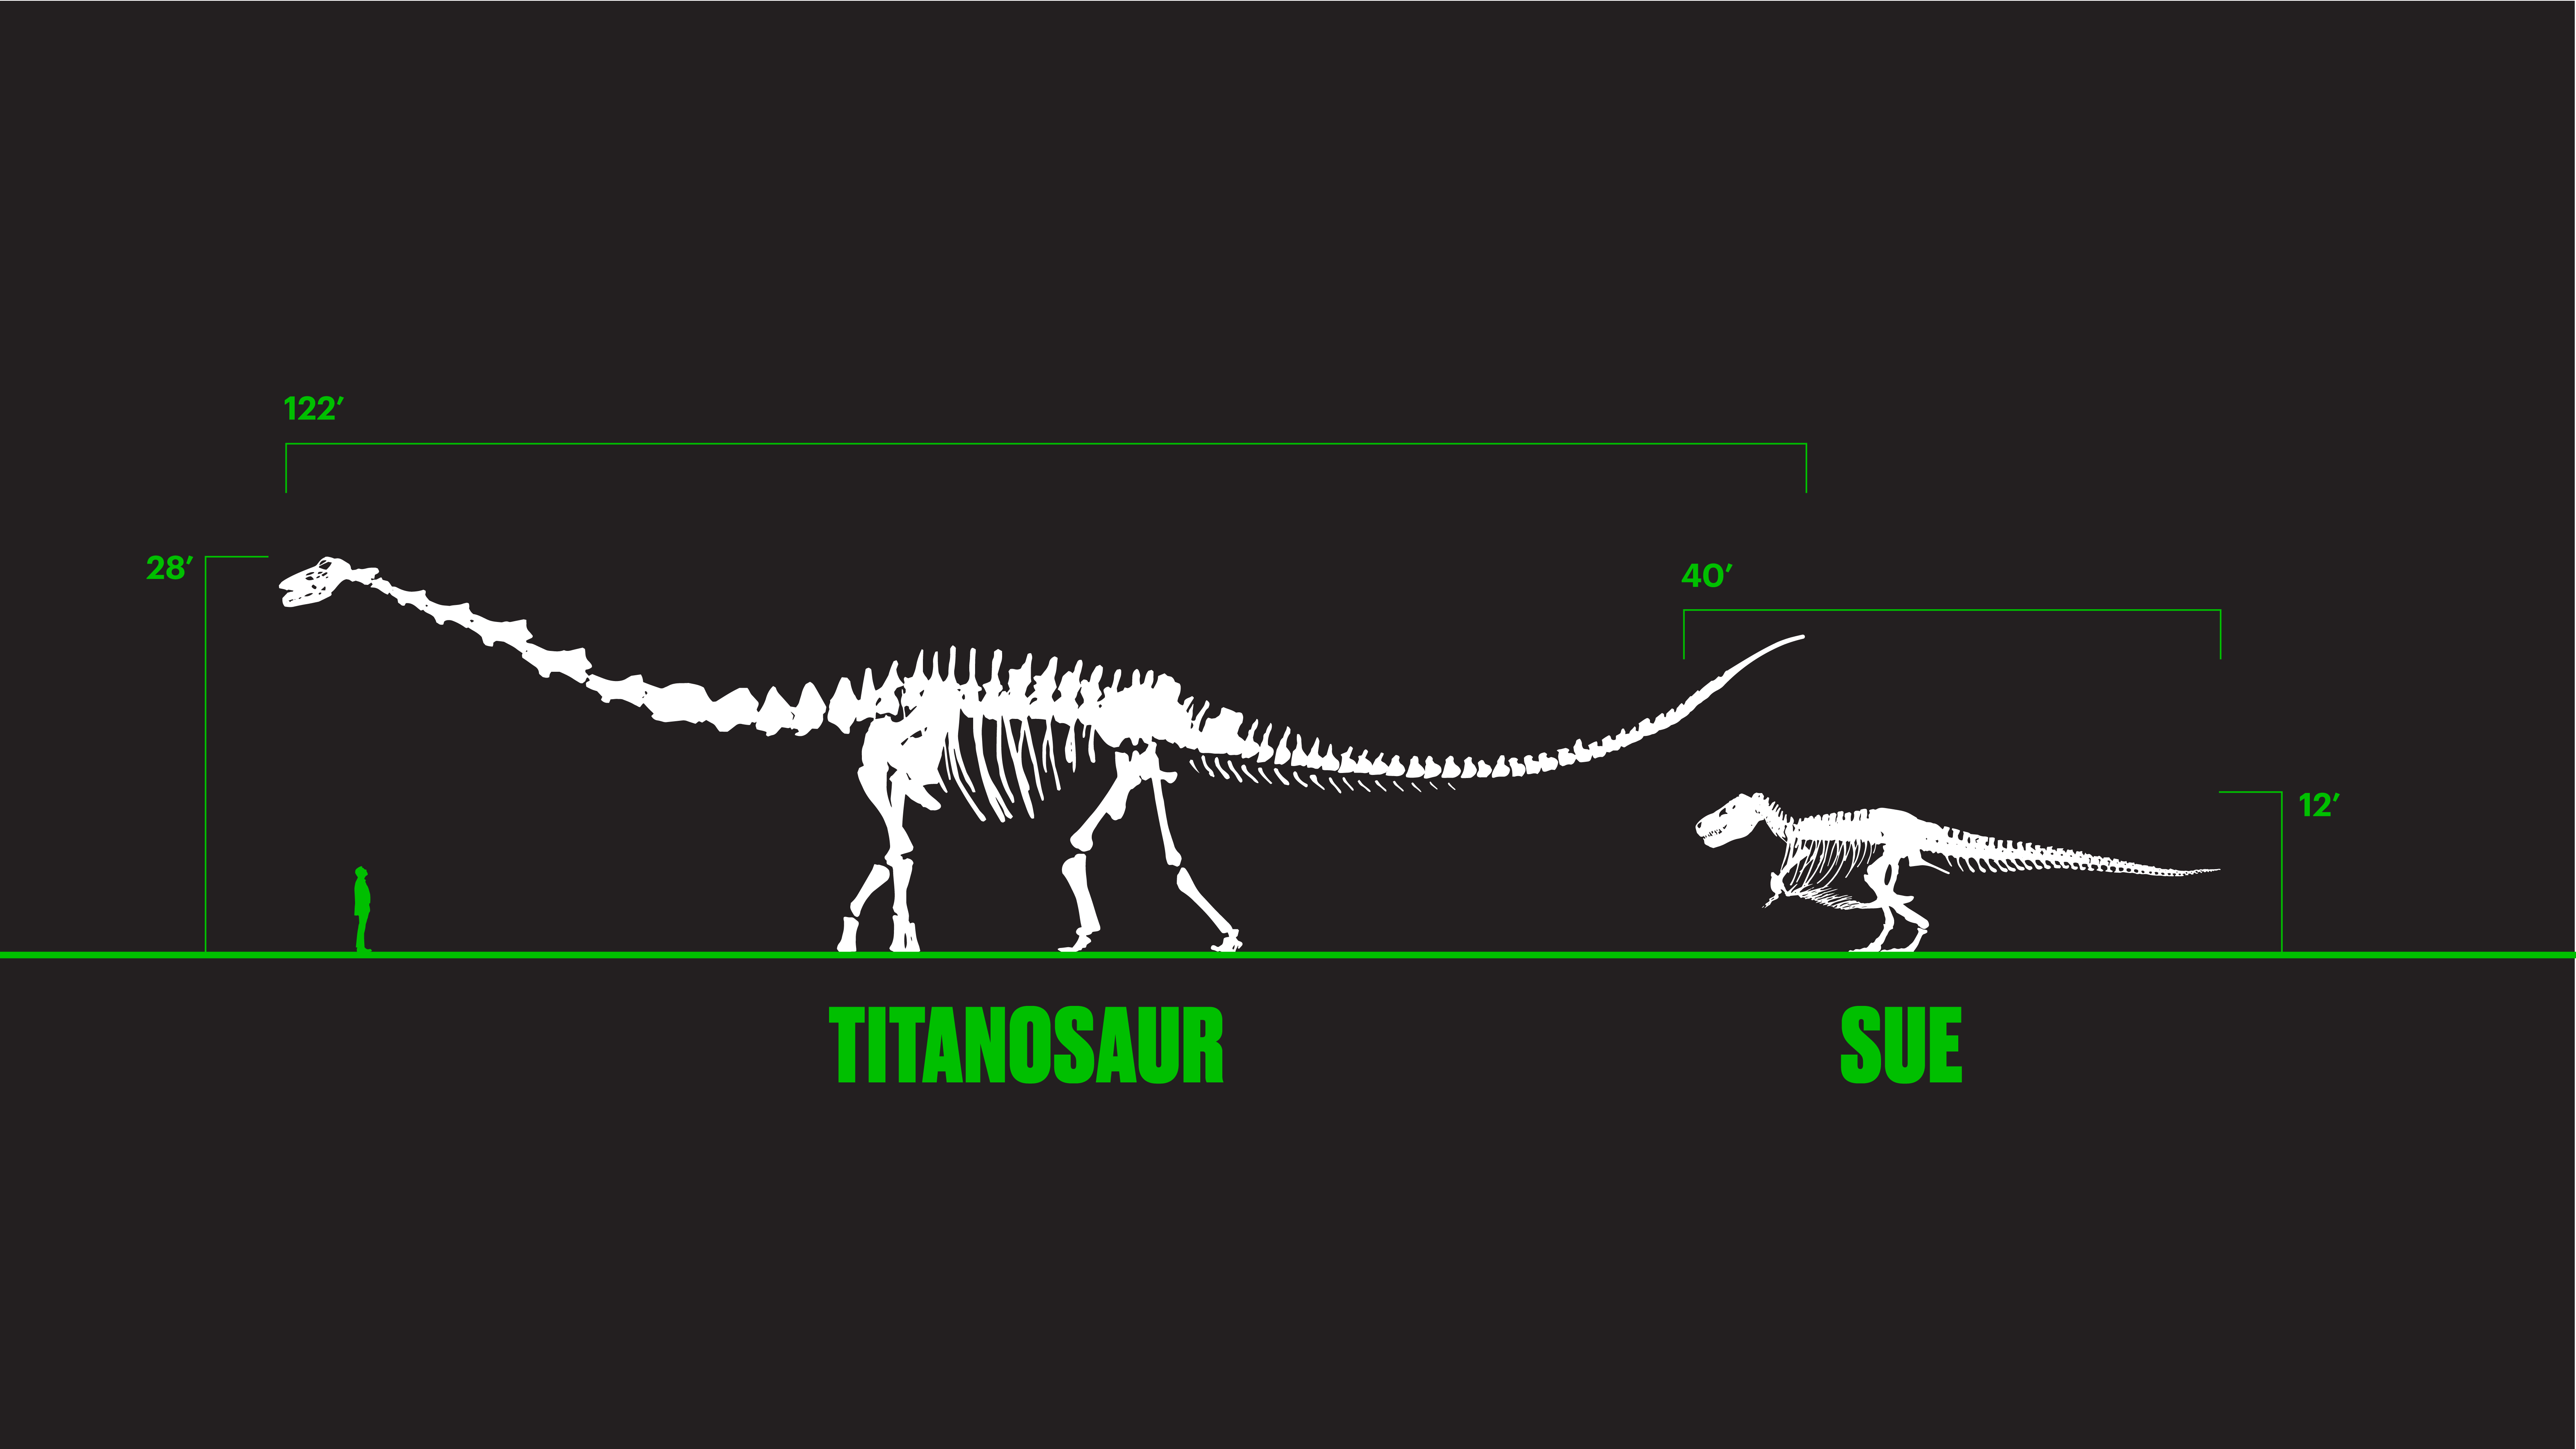 The Field Museum will soon be home to a touchable cast of the largest dinosaur ever discovered, a 122-foot long titanosaur. (Illustration courtesy The Field Museum)